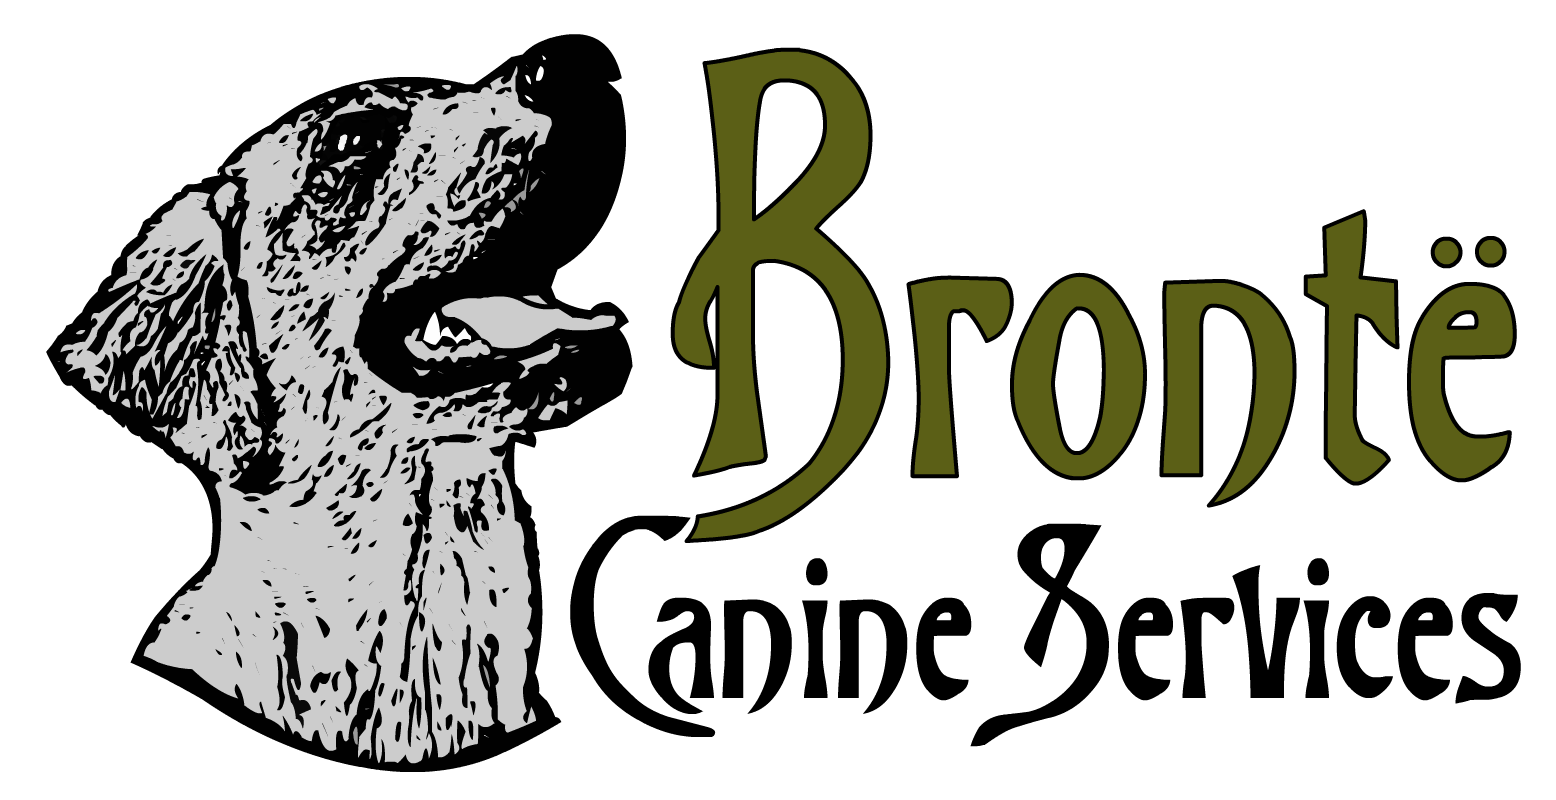 Bronte Canine Services logo